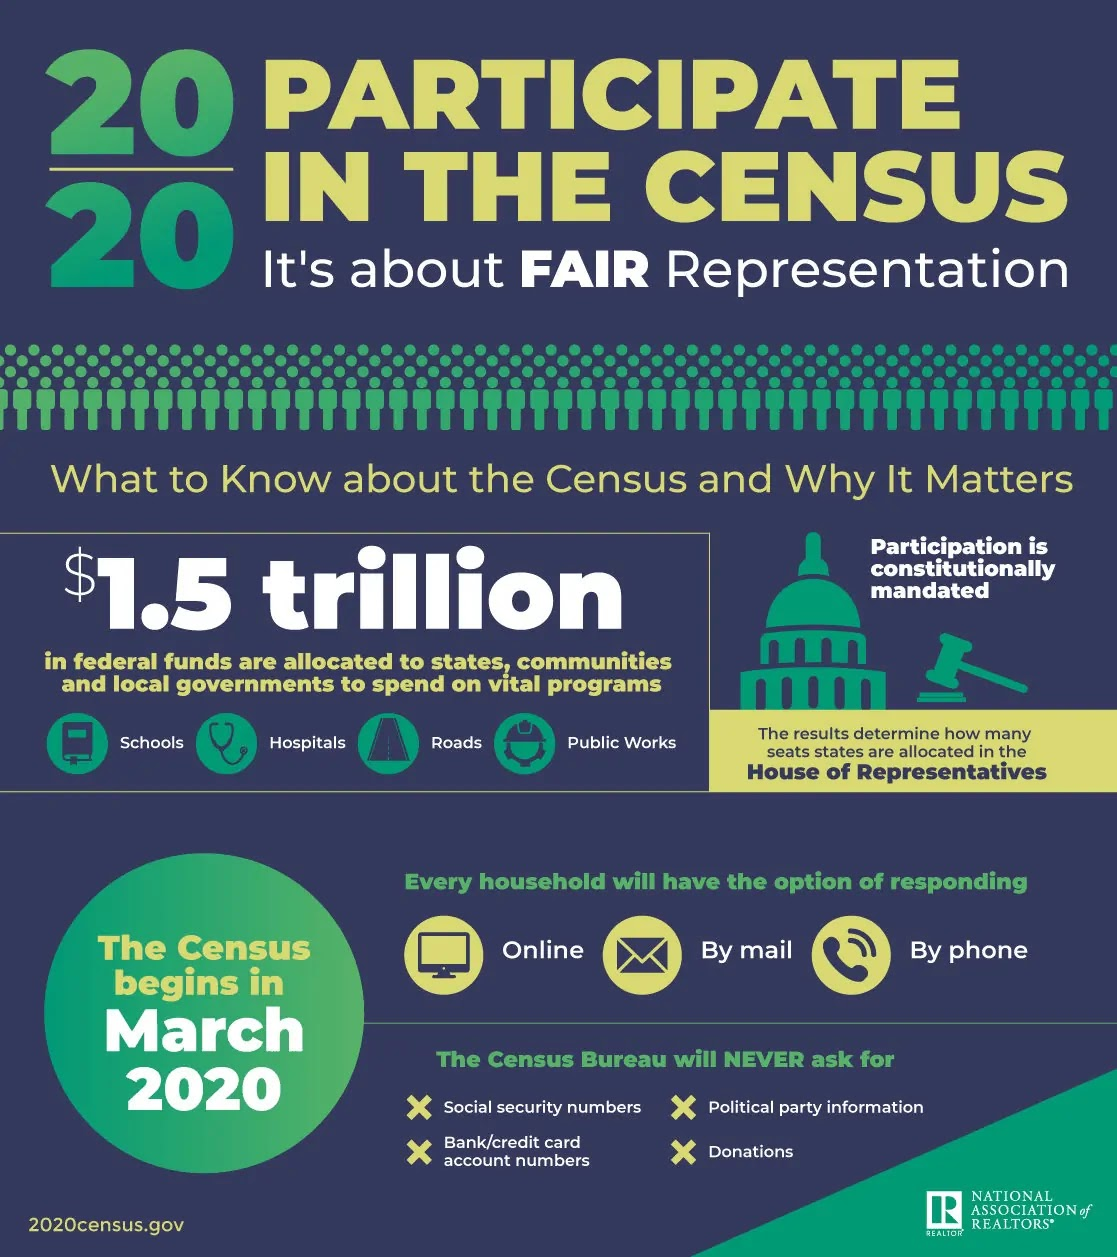 Why You Should Care About The Census